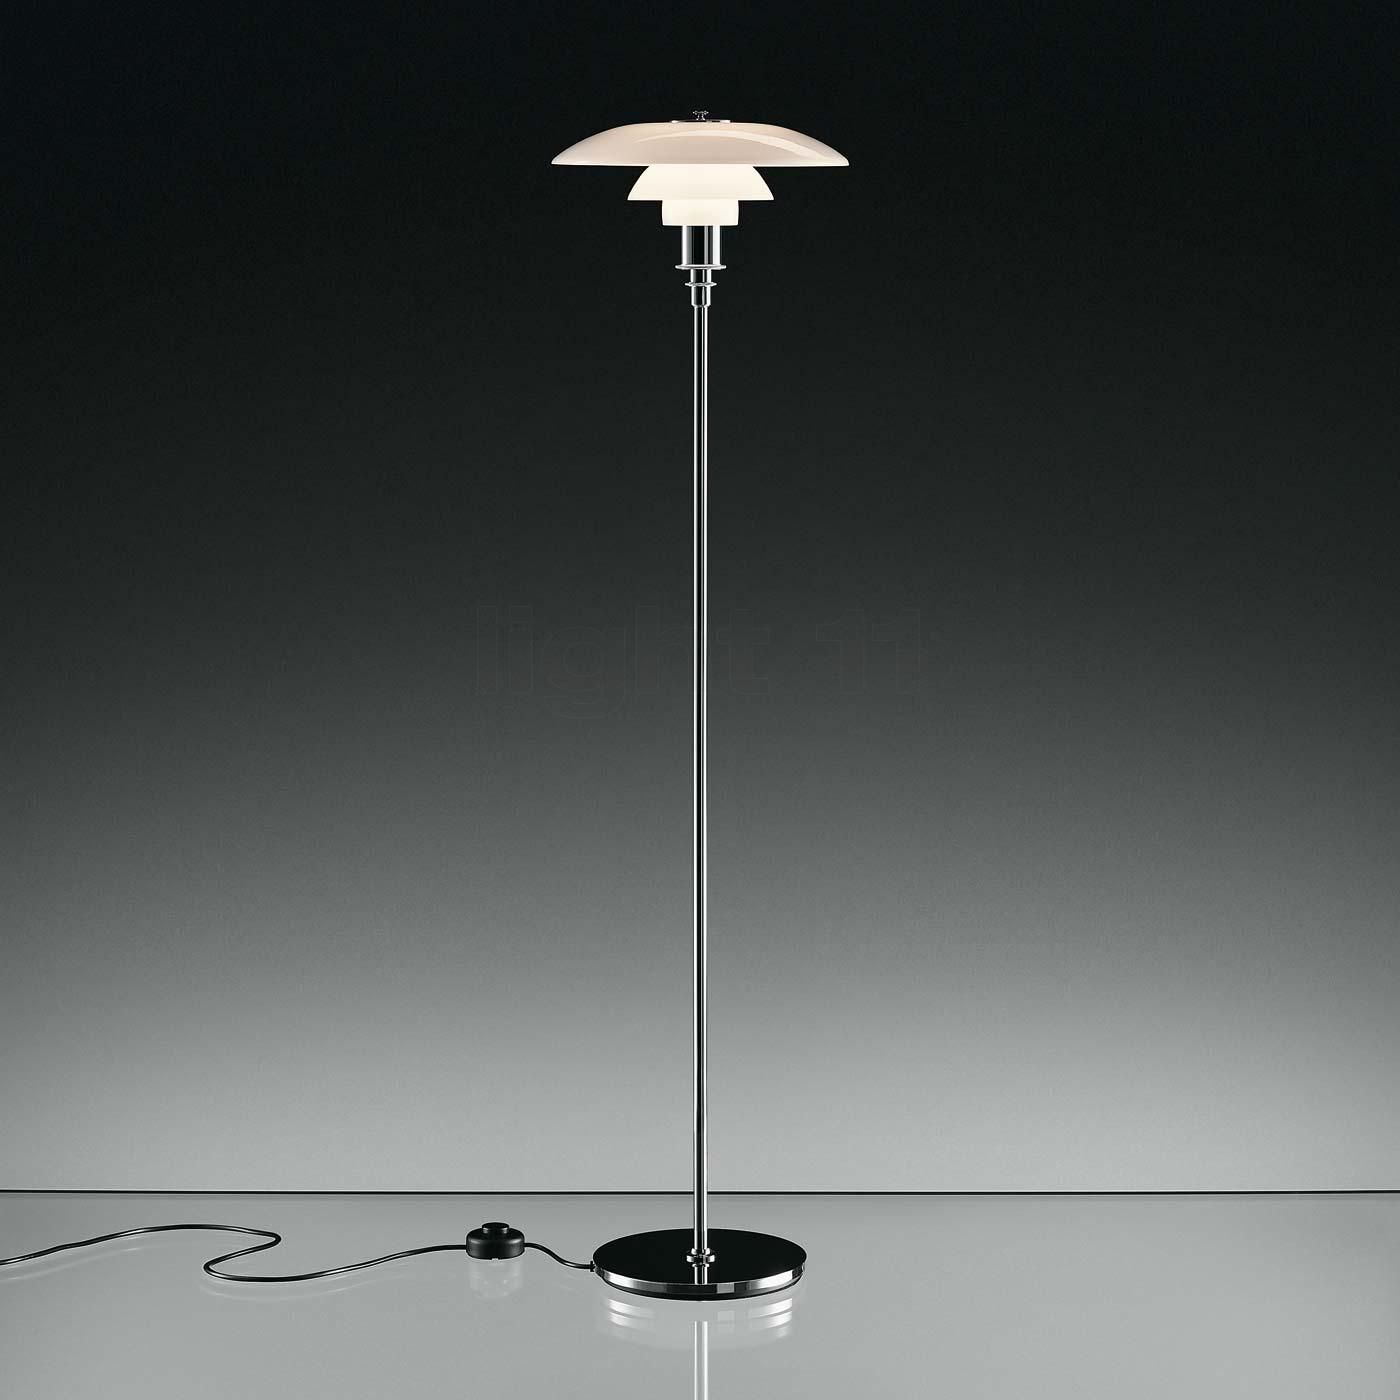 louis poulsen ph 3 2 vloerlamp vloerlampen lampen verlichting woonkamer. Black Bedroom Furniture Sets. Home Design Ideas